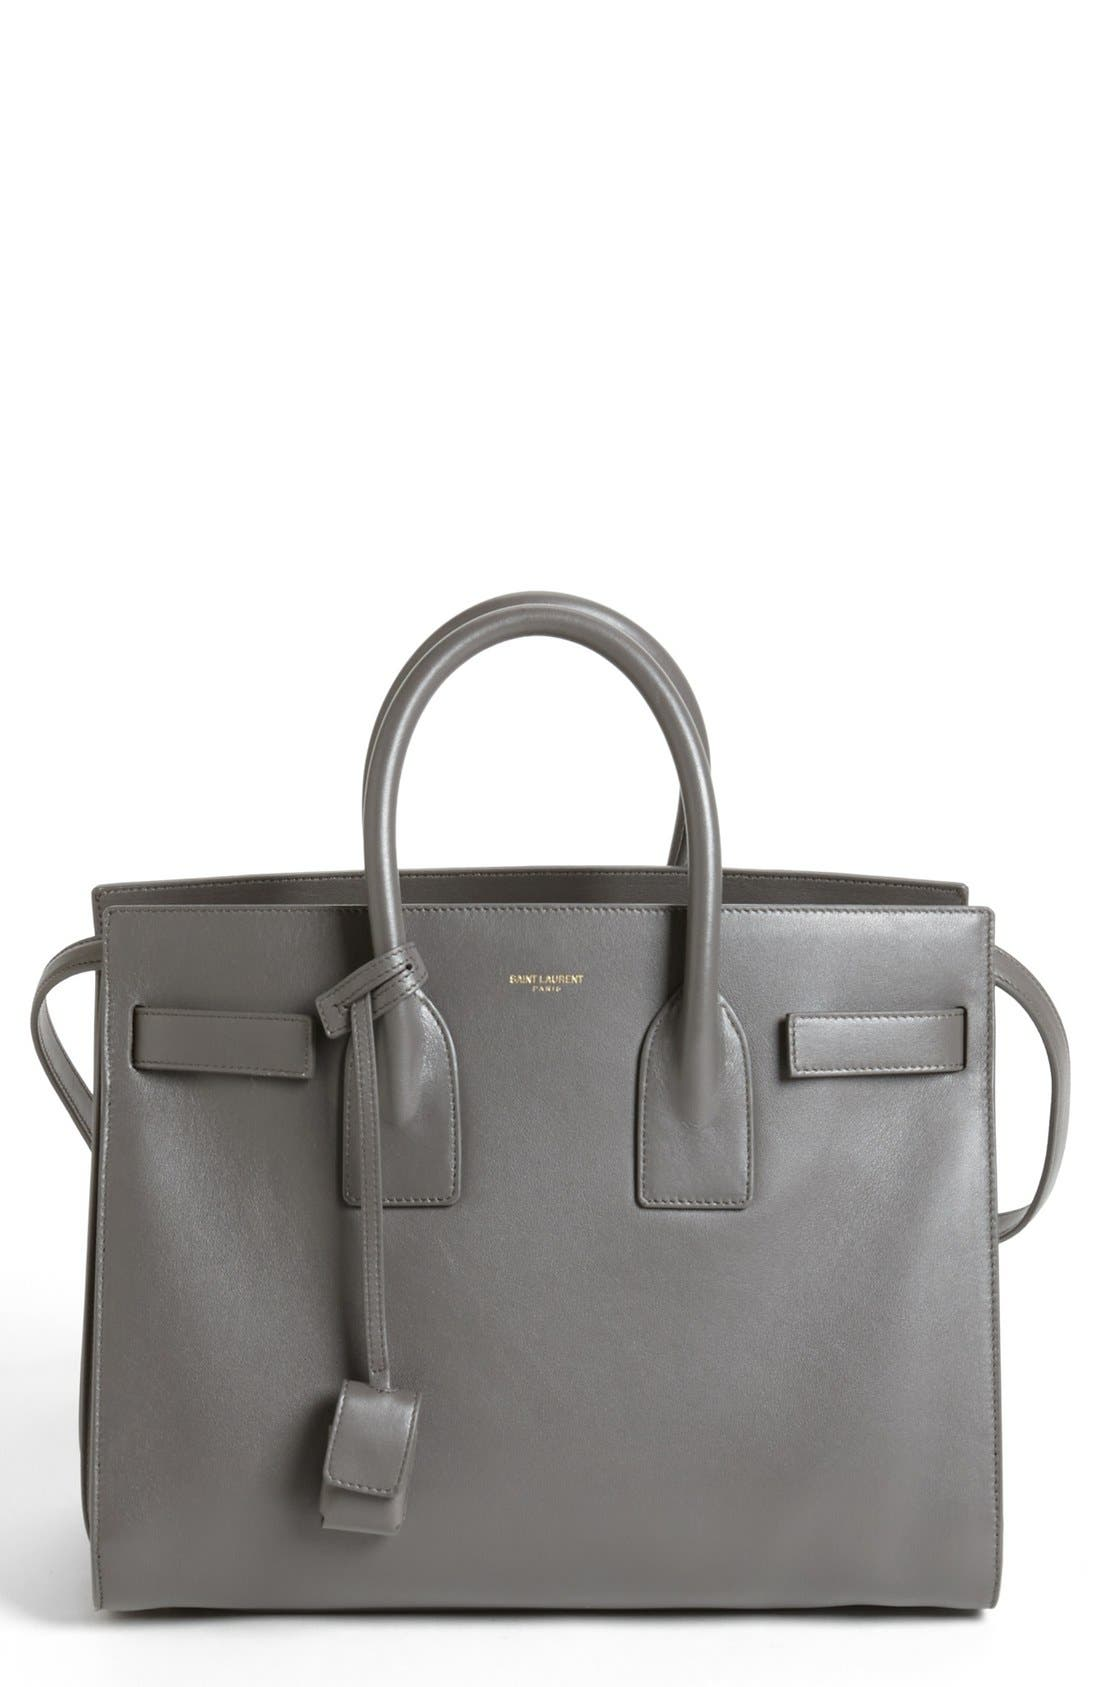 Alternate Image 1 Selected - Saint Laurent 'Small Sac de Jour' Leather Tote